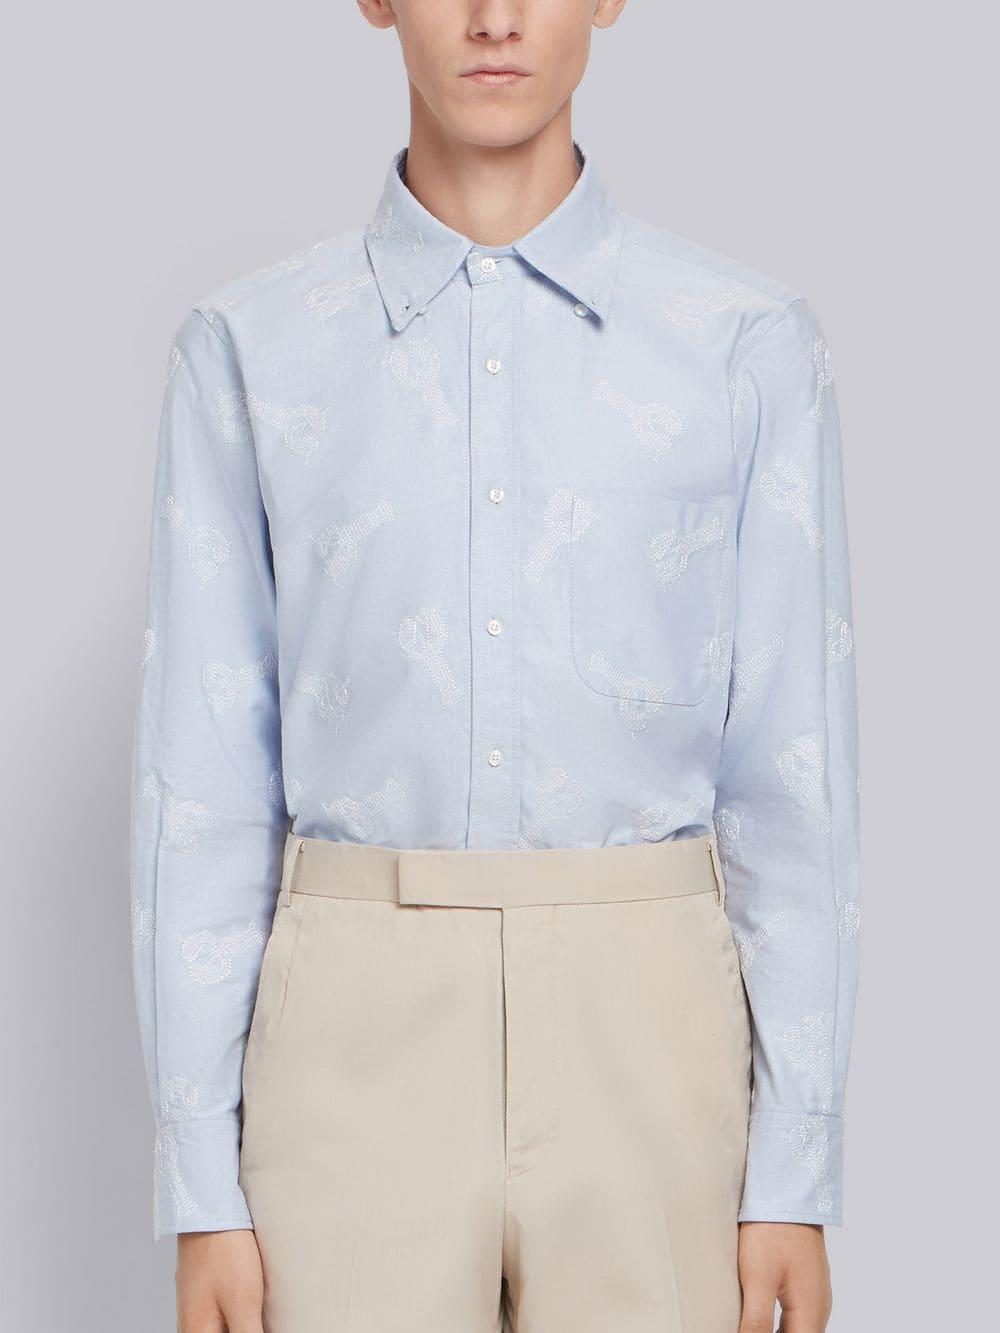 c1911b888aa Lyst - Thom Browne Embroidered Lobster Oxford Shirt in Blue for Men